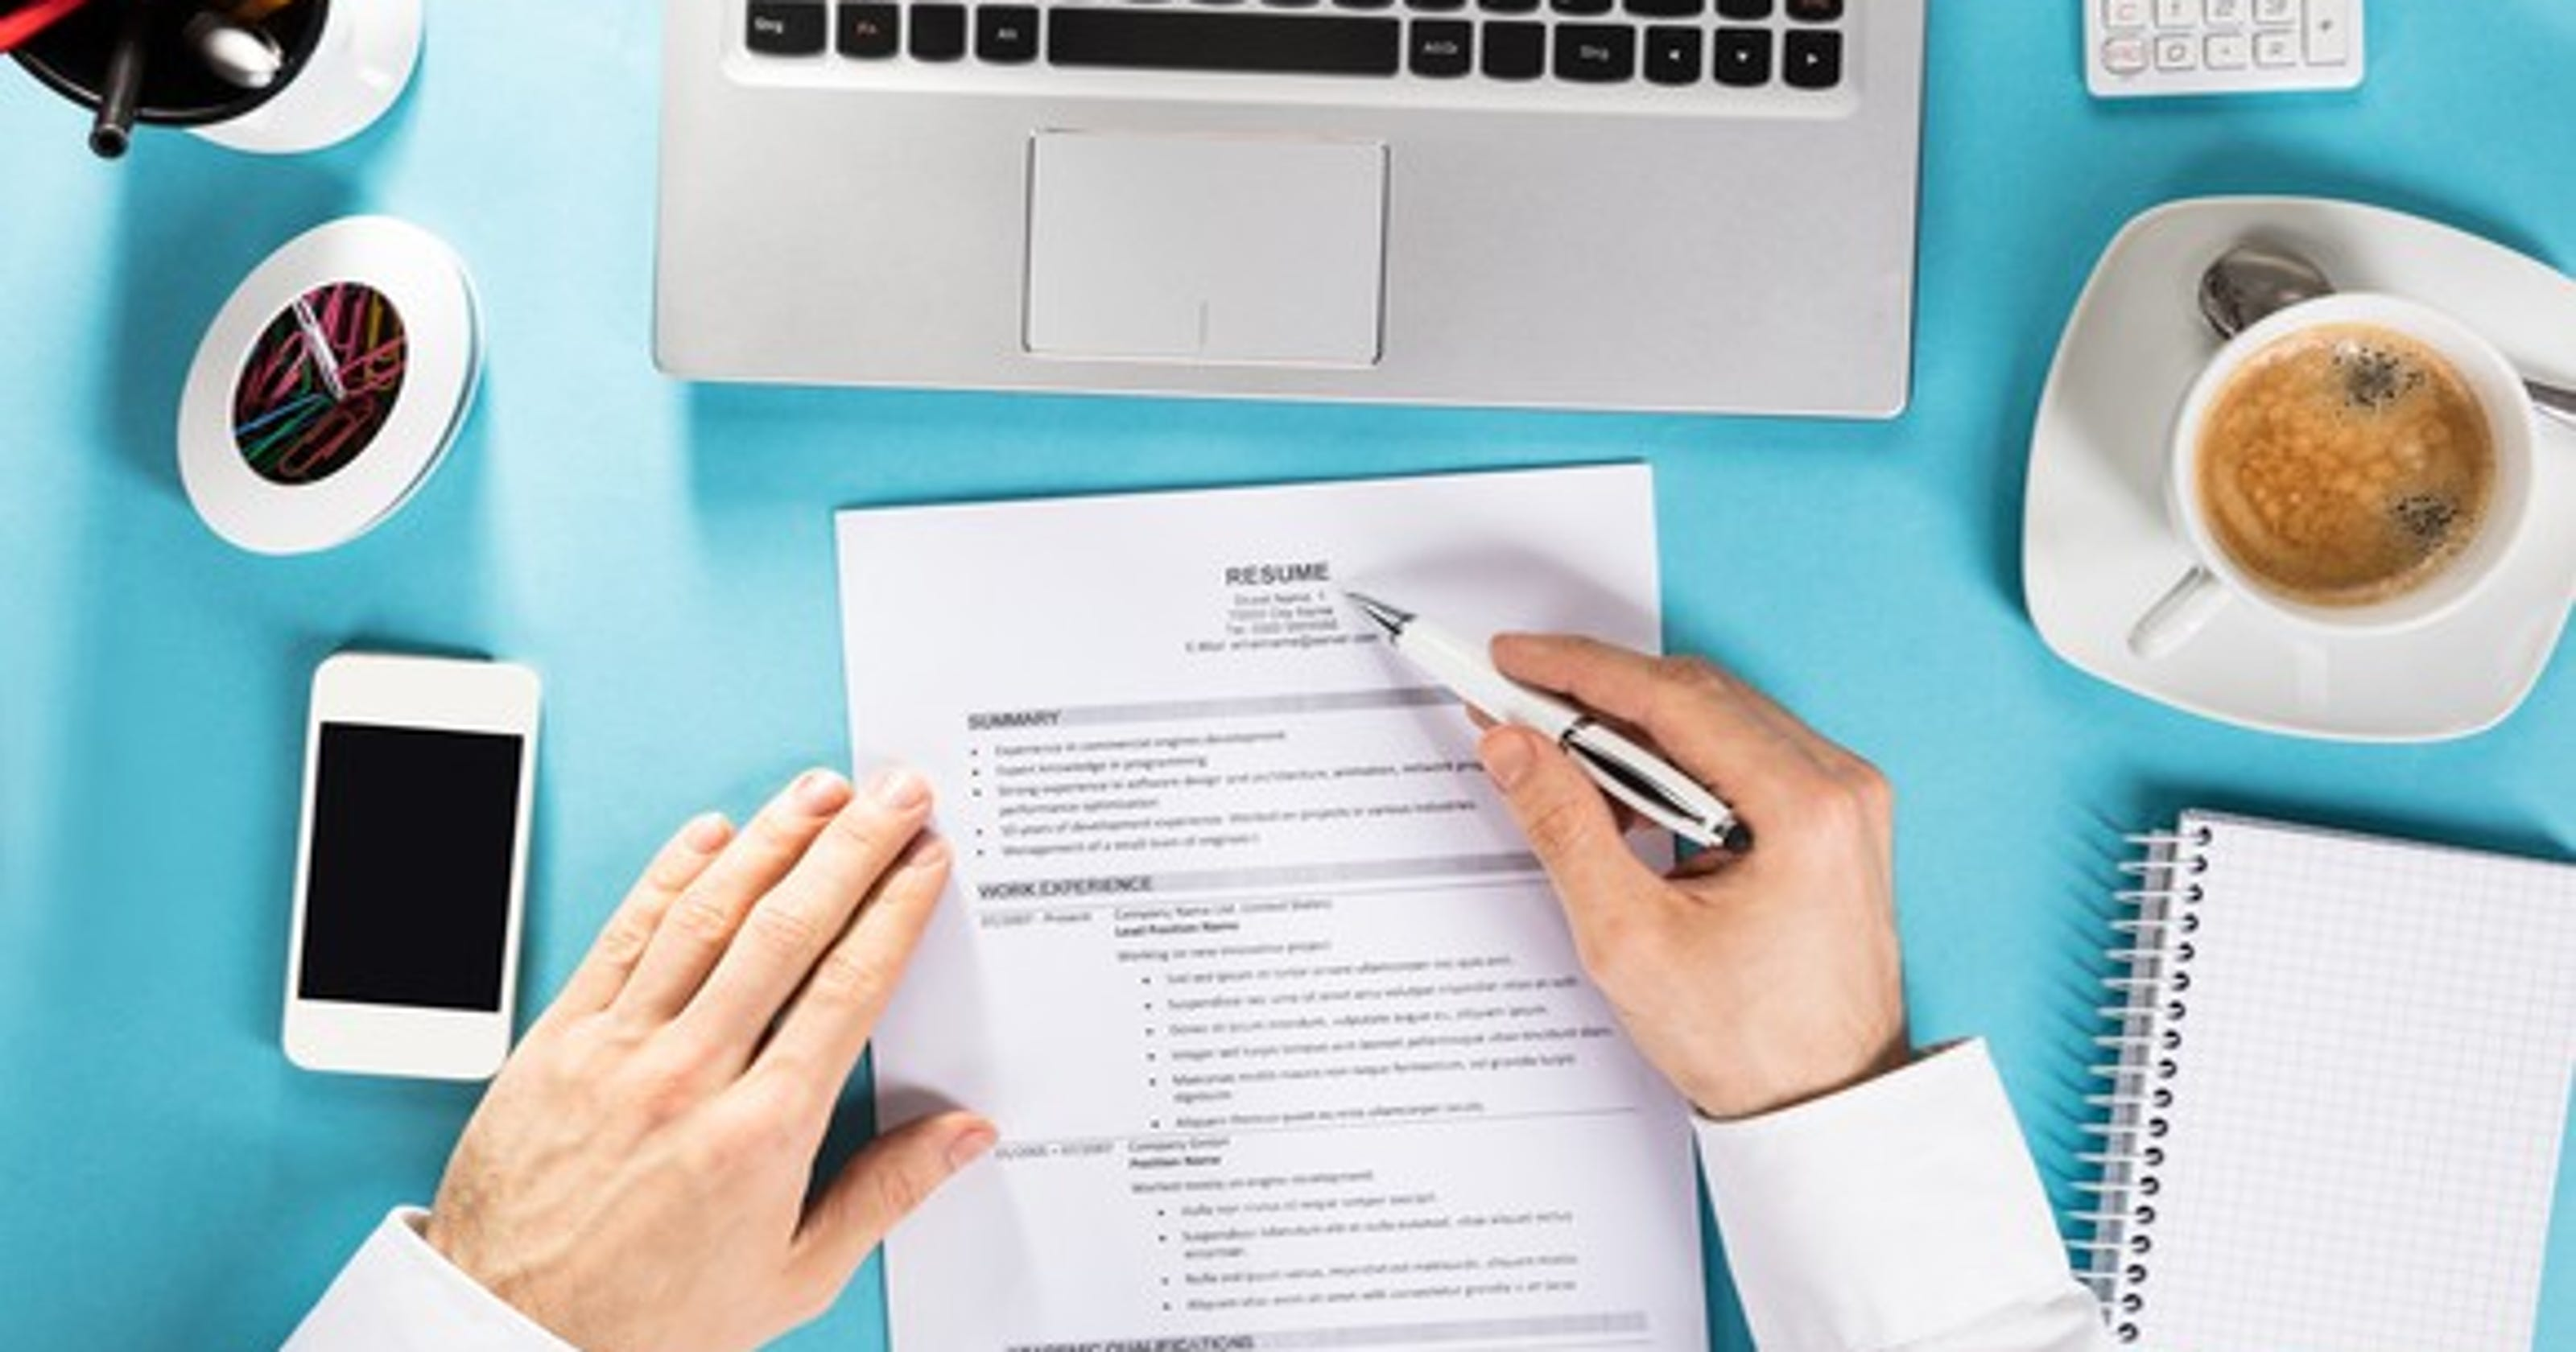 Resume fair scheduled for Friday at library